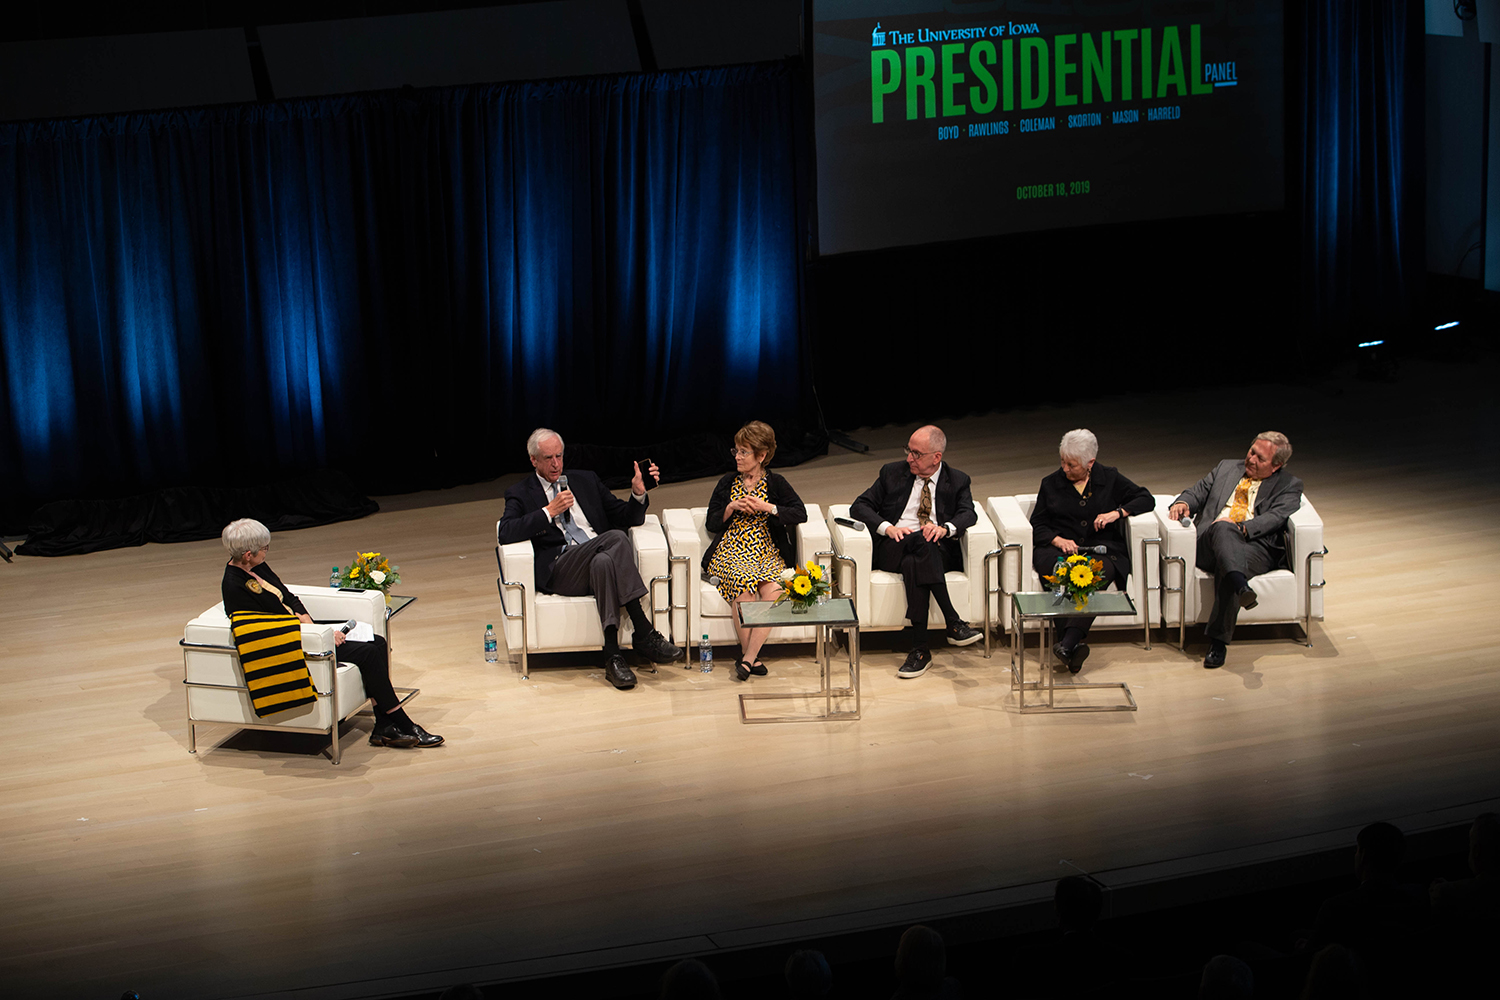 Former UI President Hunter Rawlings (1988-2015) speaks during a panel discussion by four former University of Iowa Presidents and current UI President Bruce Harreld on Friday, Oct. 18, 2019 in the Voxman concert hall. The event coincided with the unveiling of portraits of former UI Presidents Mary Sue Coleman, David Skorton, and Sally Mason, which will be on display on the fifth floor of the UI Main Library.